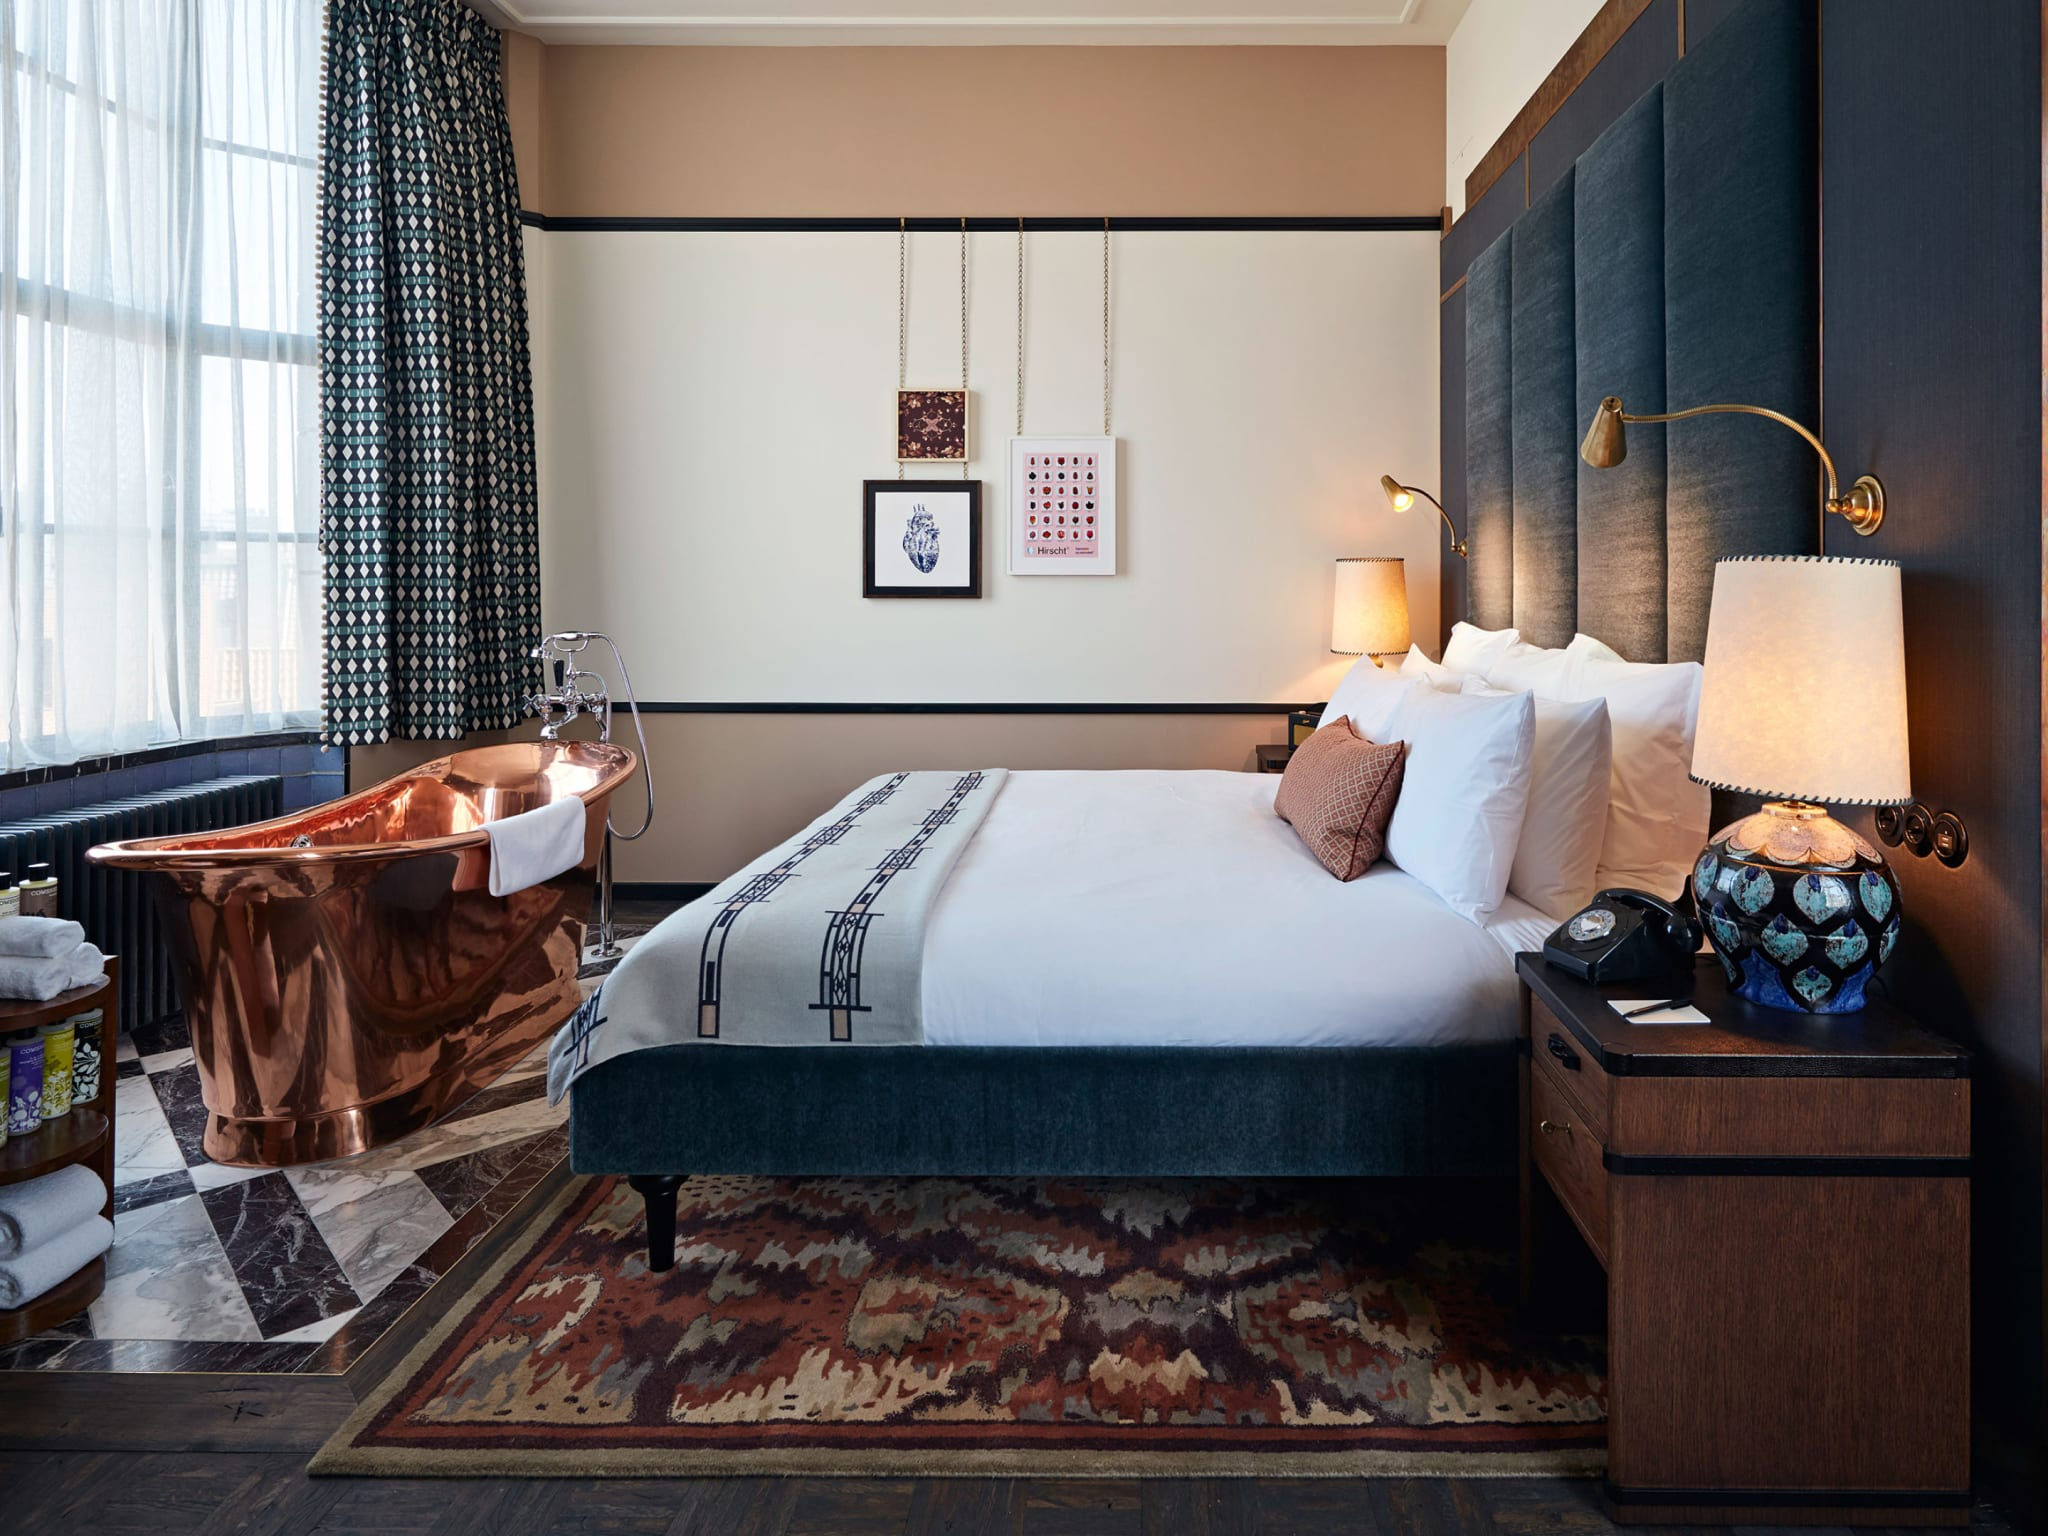 A bedroom with a copper bathtub at the end of the bed.